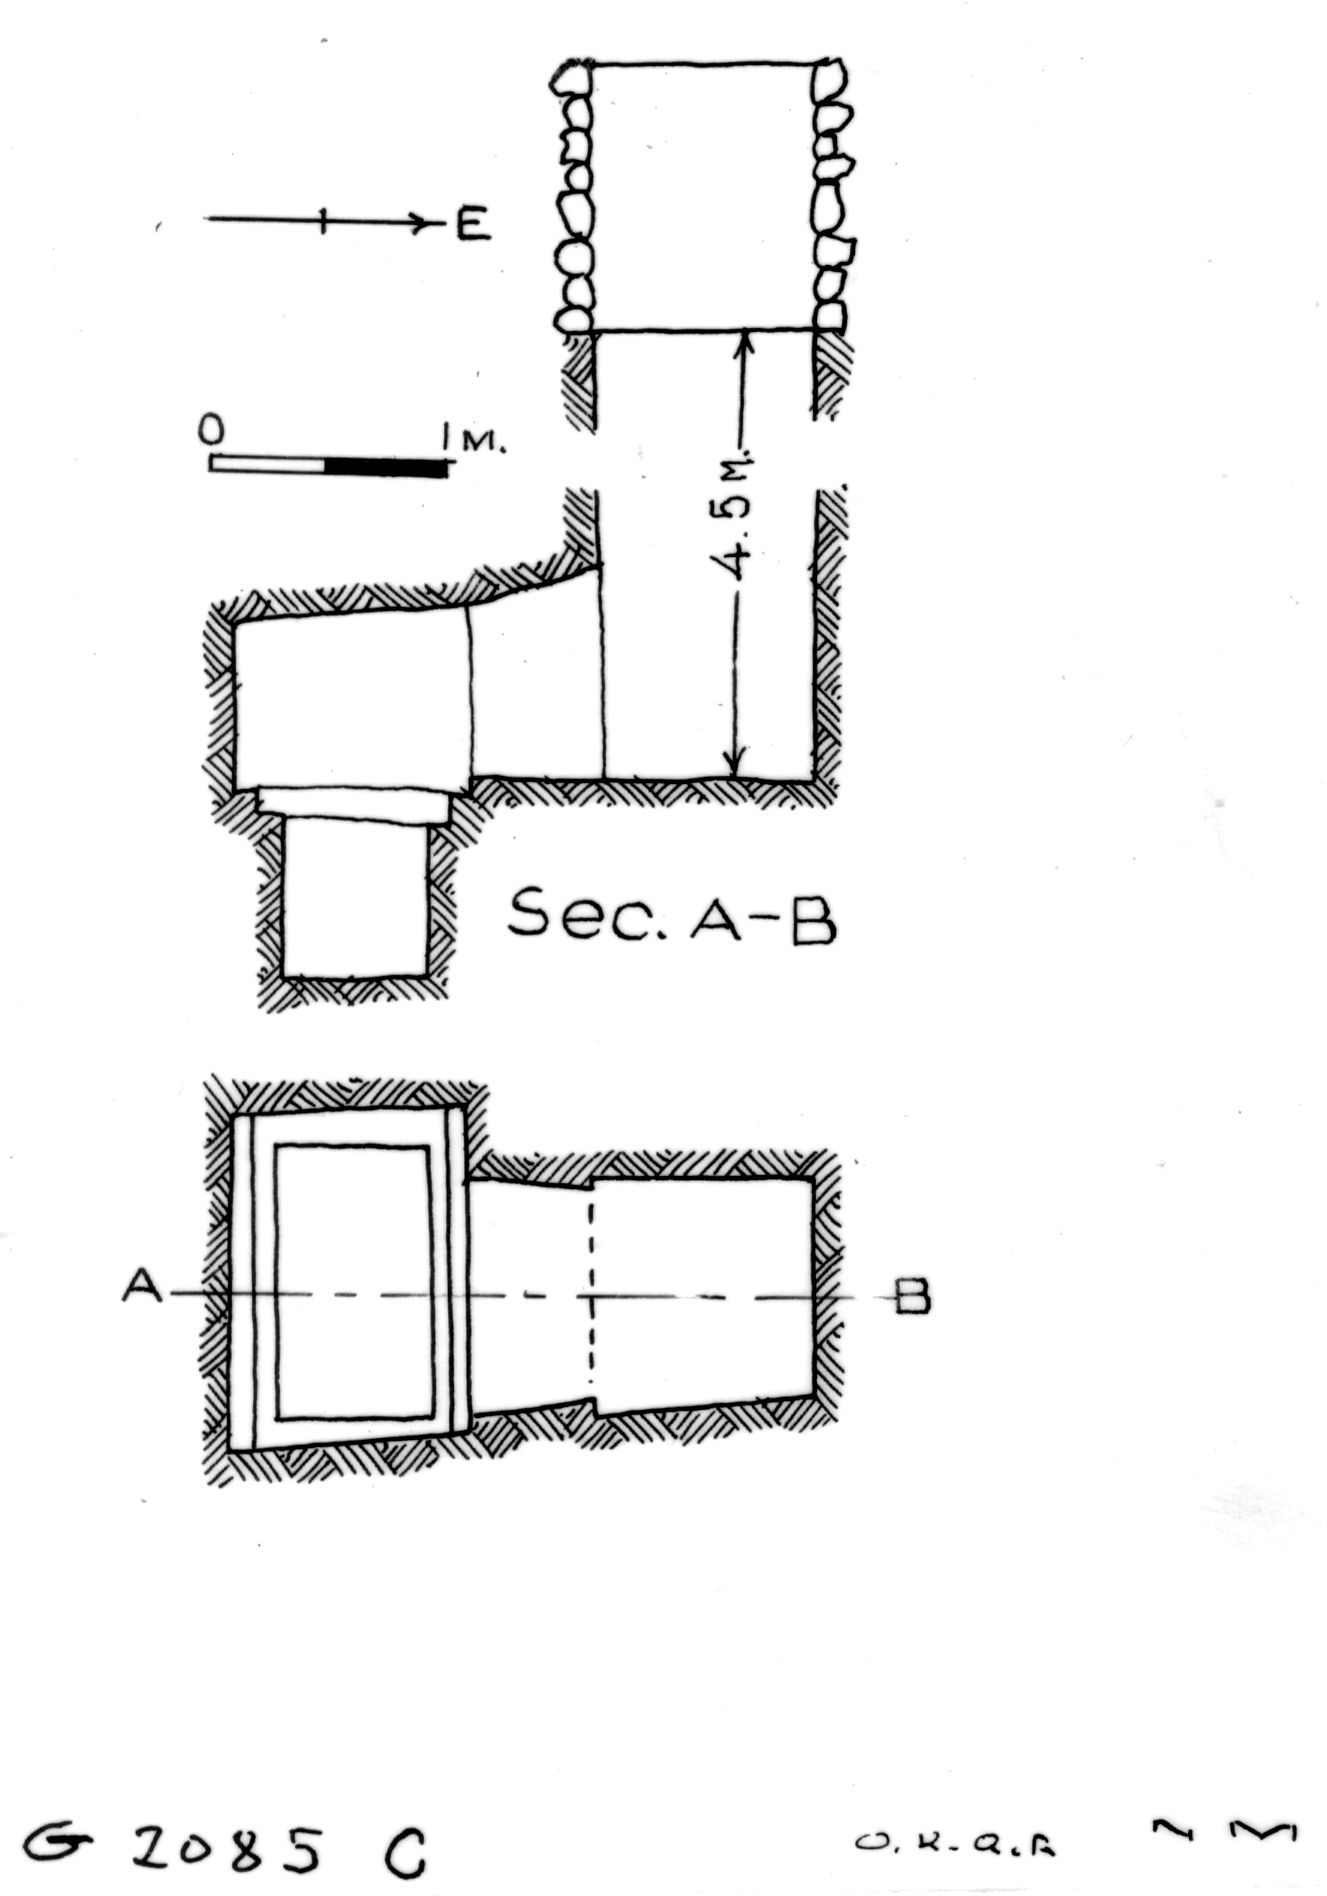 Maps and plans: G 2085, Shaft C